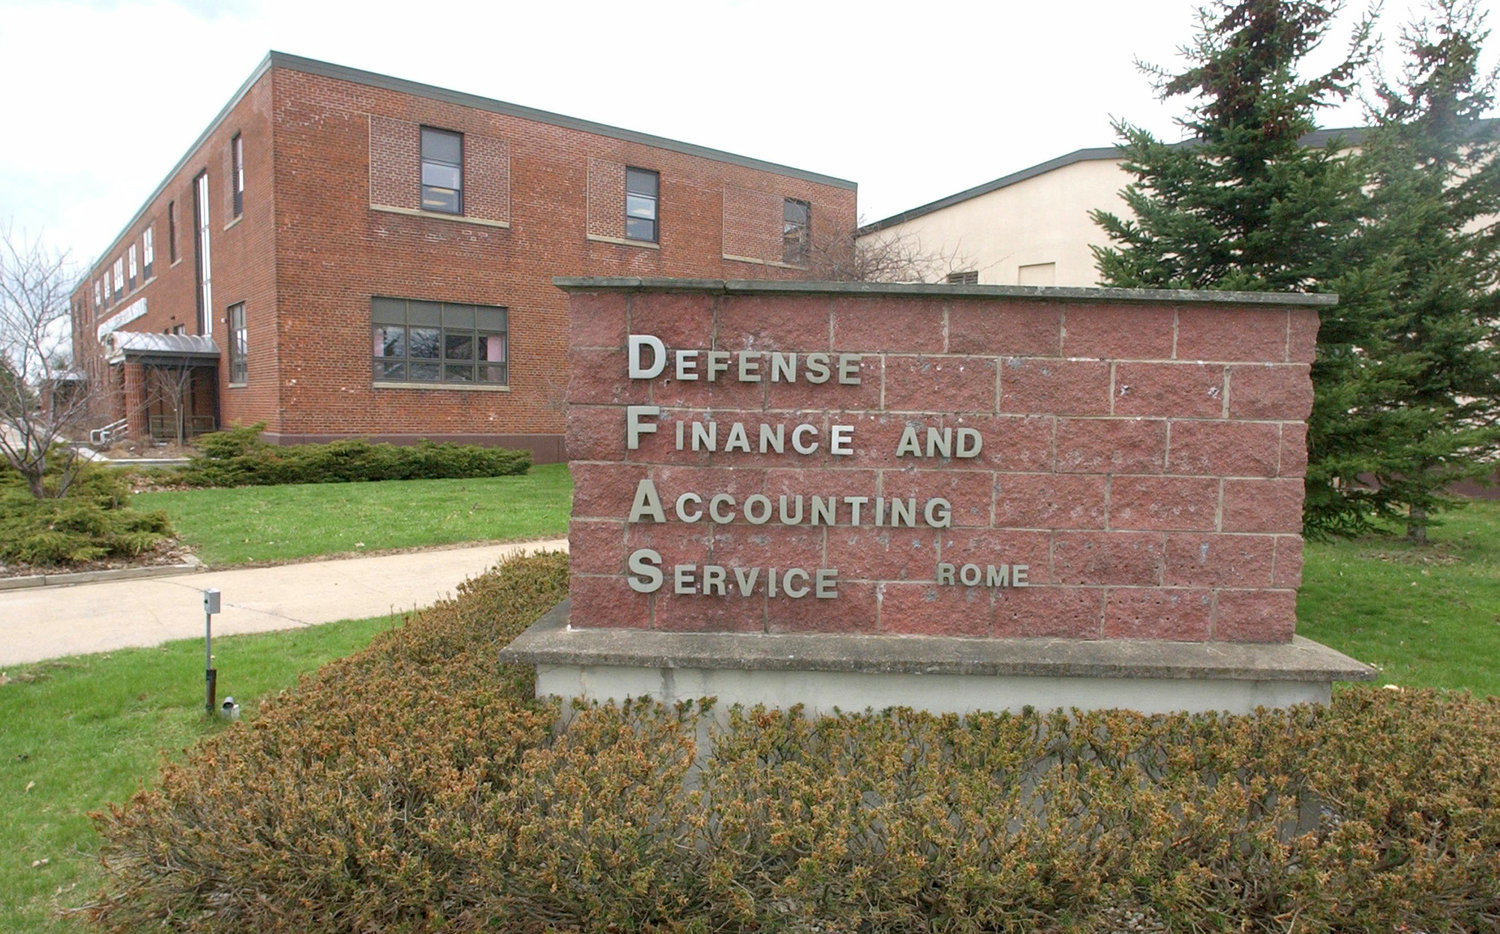 EYE ON AUTOMATION — Defense Finance and Accounting Service union officials say they are  keeping an eye on a potential automation project to boost efficiencies and the potential impacts on the workfoce at the Rome DFAS site at the Griffiss Business and Technology Park.